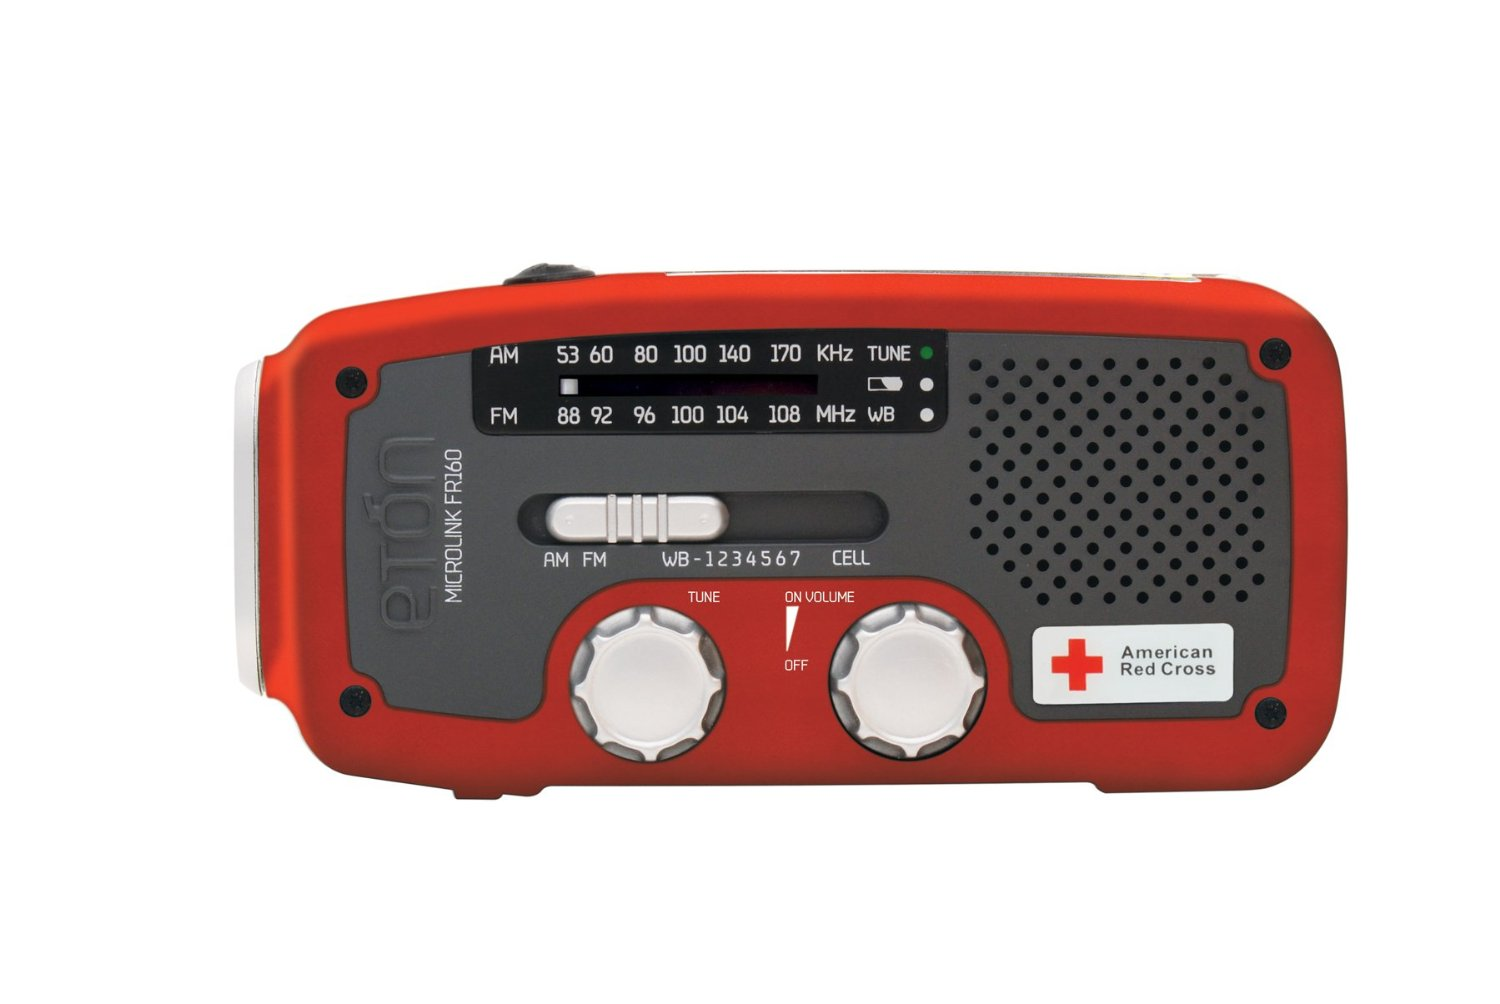 Et 243 N American Red Cross Self Powered Weather Radio With